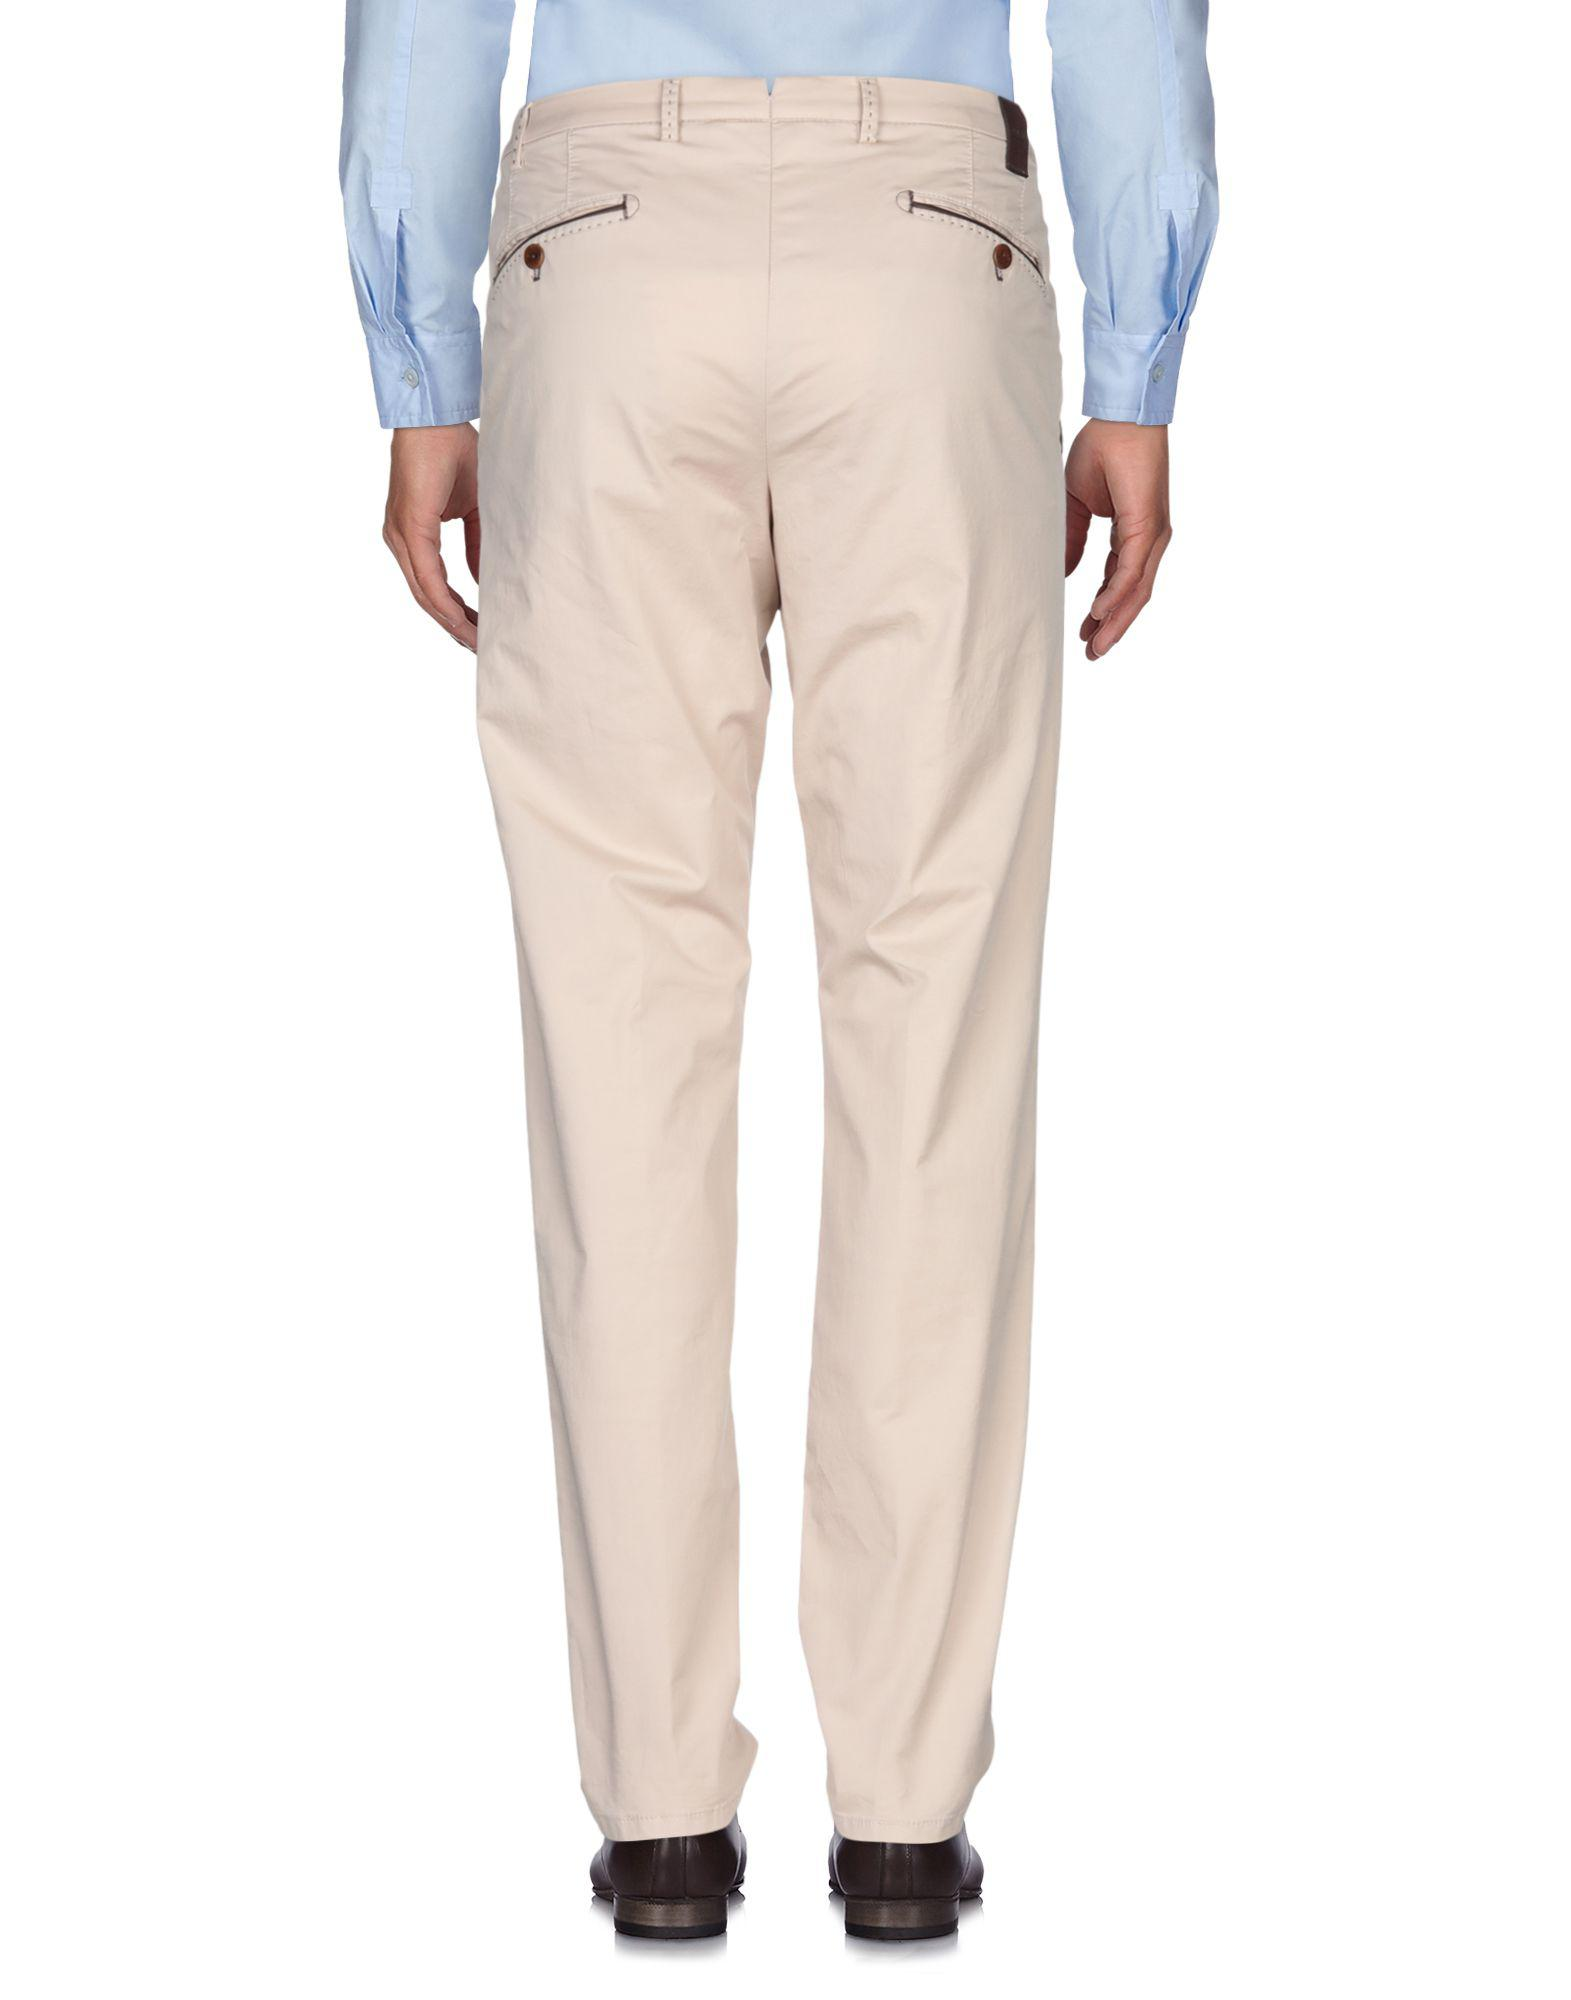 MMX Leather Casual Trouser in Beige (Natural) for Men